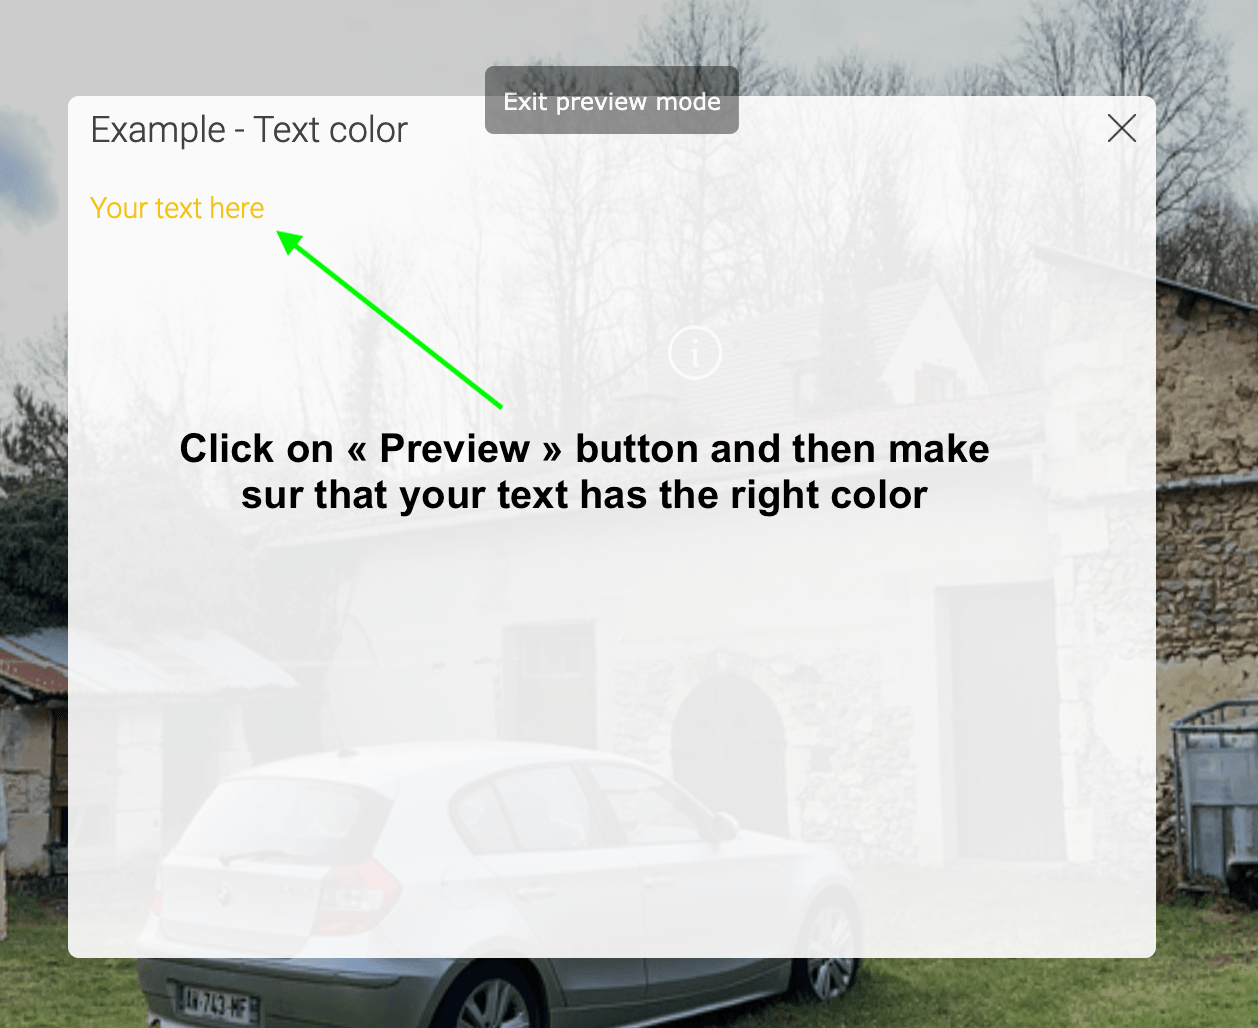 Add color to the text in an information hotspot